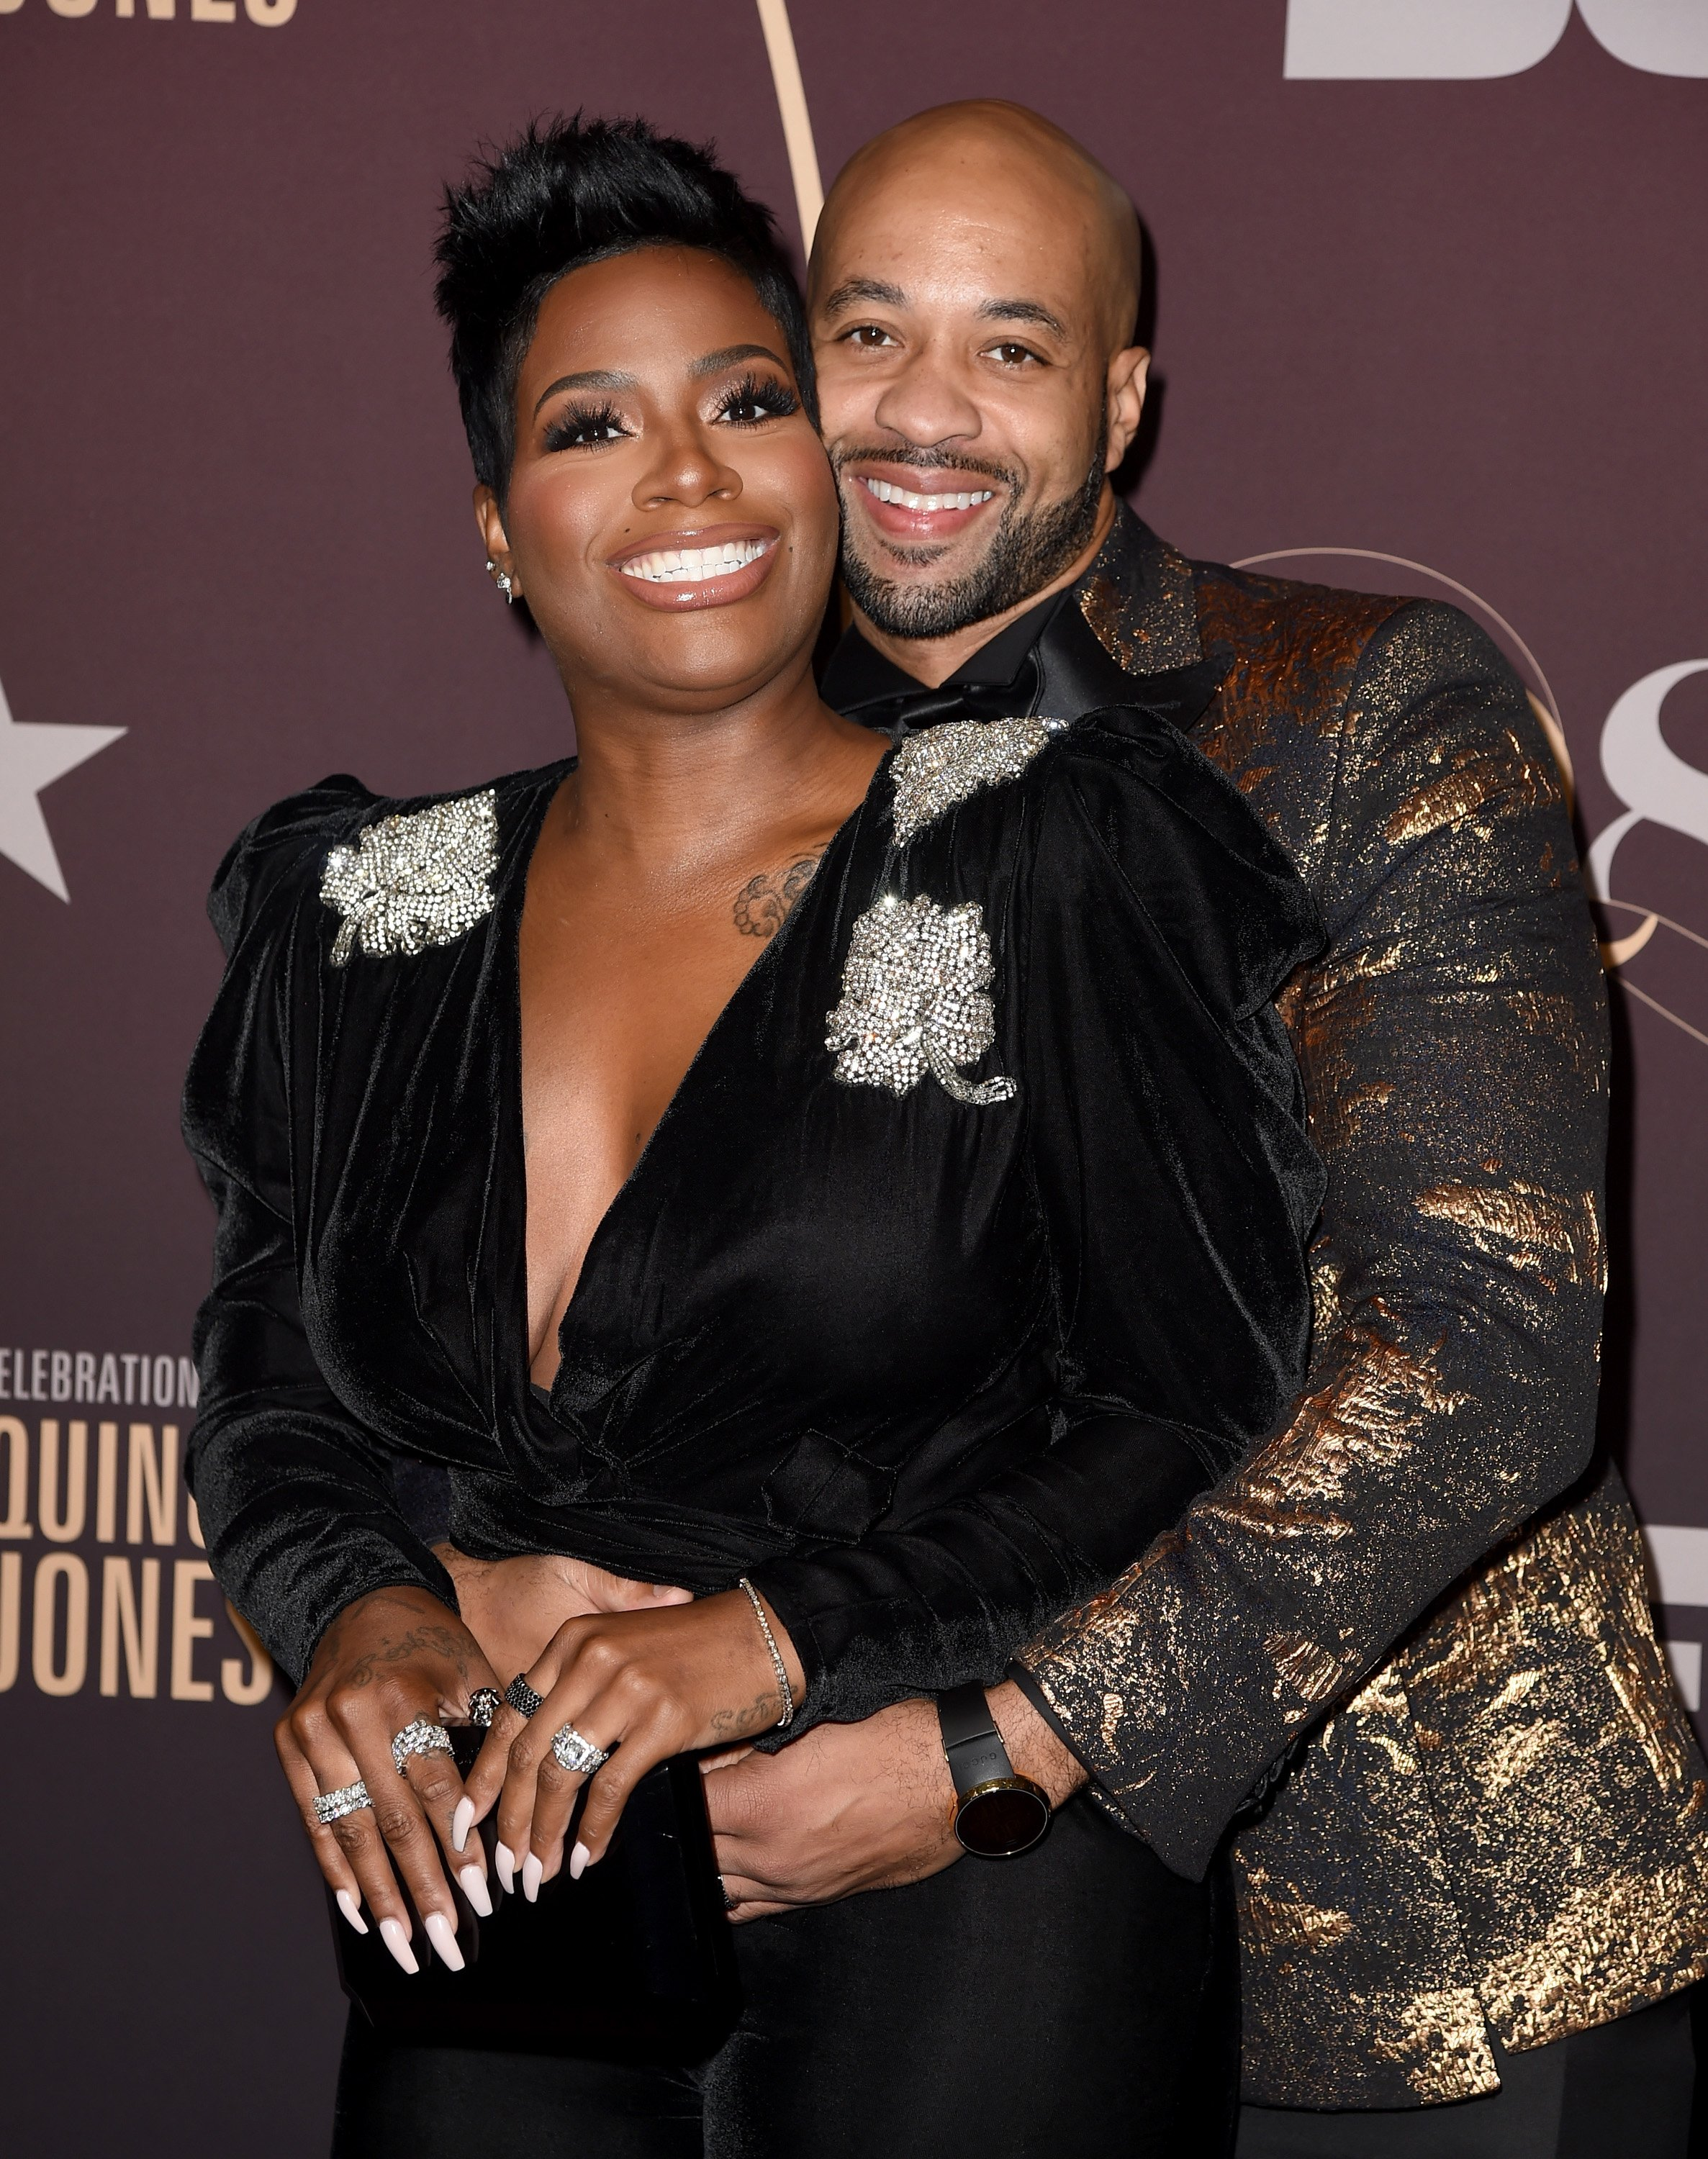 Fantasia Barrino and her husband Kendall Taylor arrive at Q85: A Musical Celebration for Quincy Jones at the Microsoft Theatre on September 25, 2018.   Photo: Getty Images